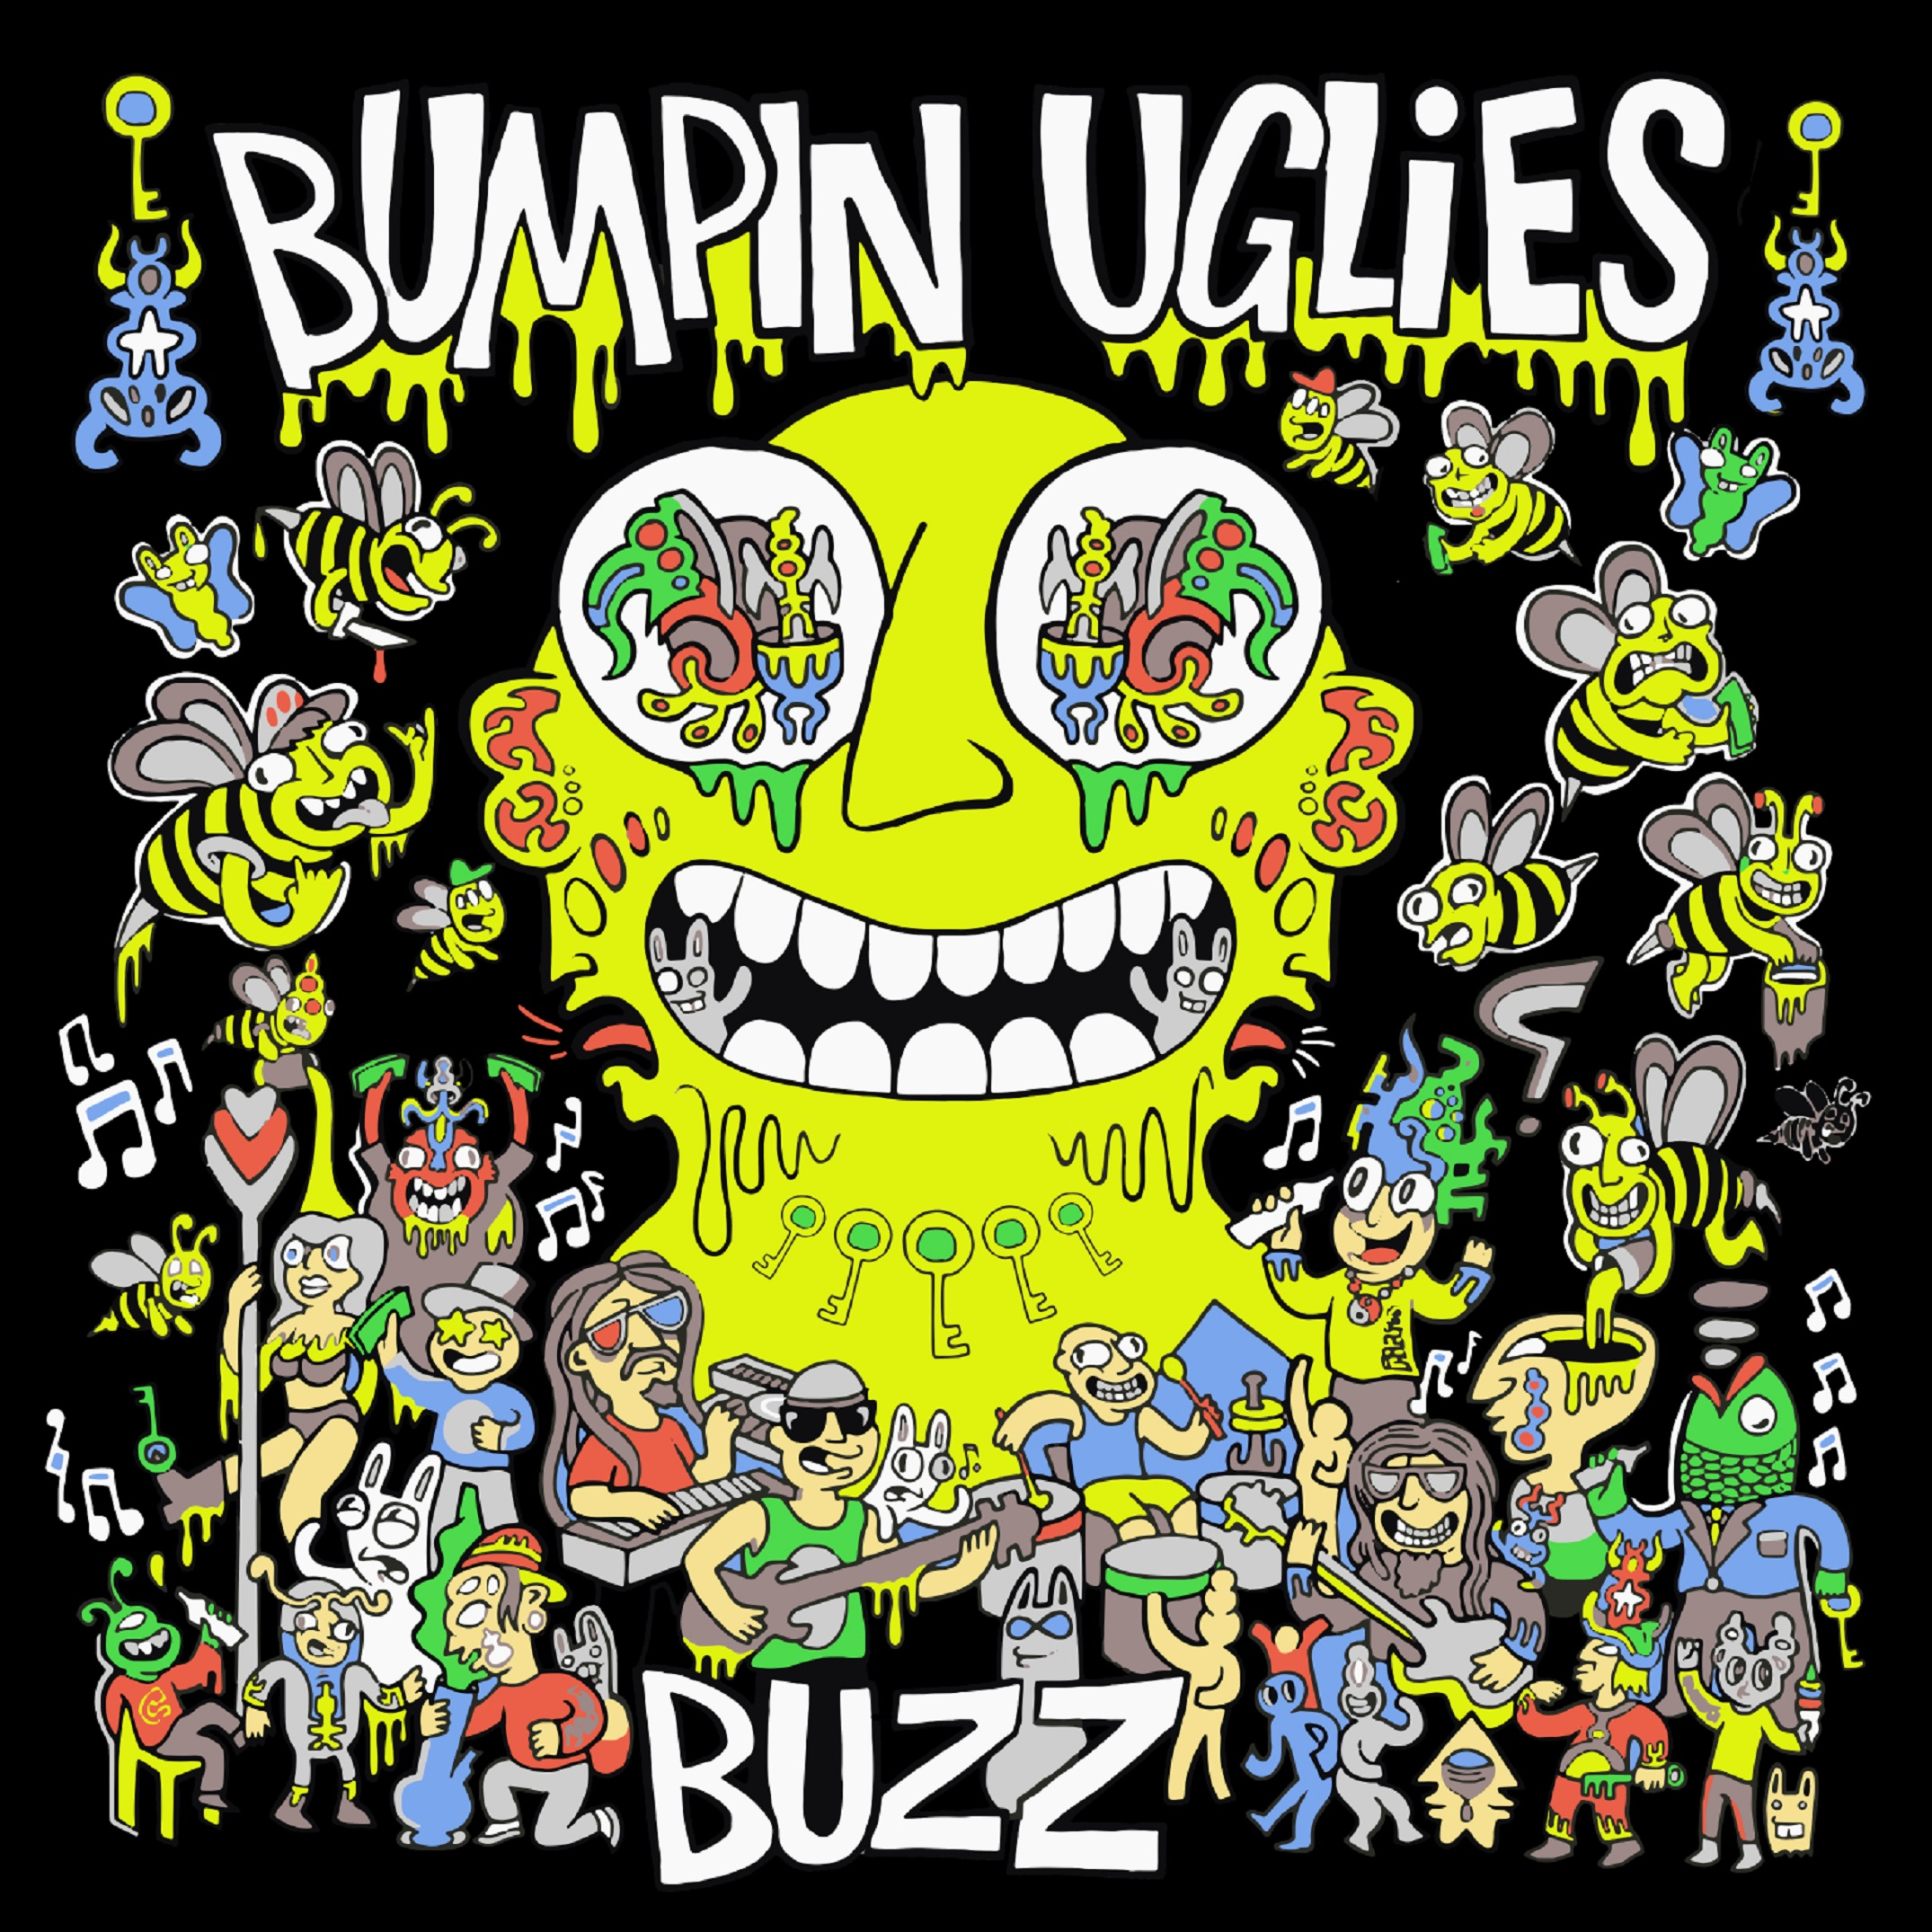 BUMPIN UGLIES ANNOUNCE EP BUZZ IN PARTNERSHIP WITH INEFFABLE MUSIC GROUP